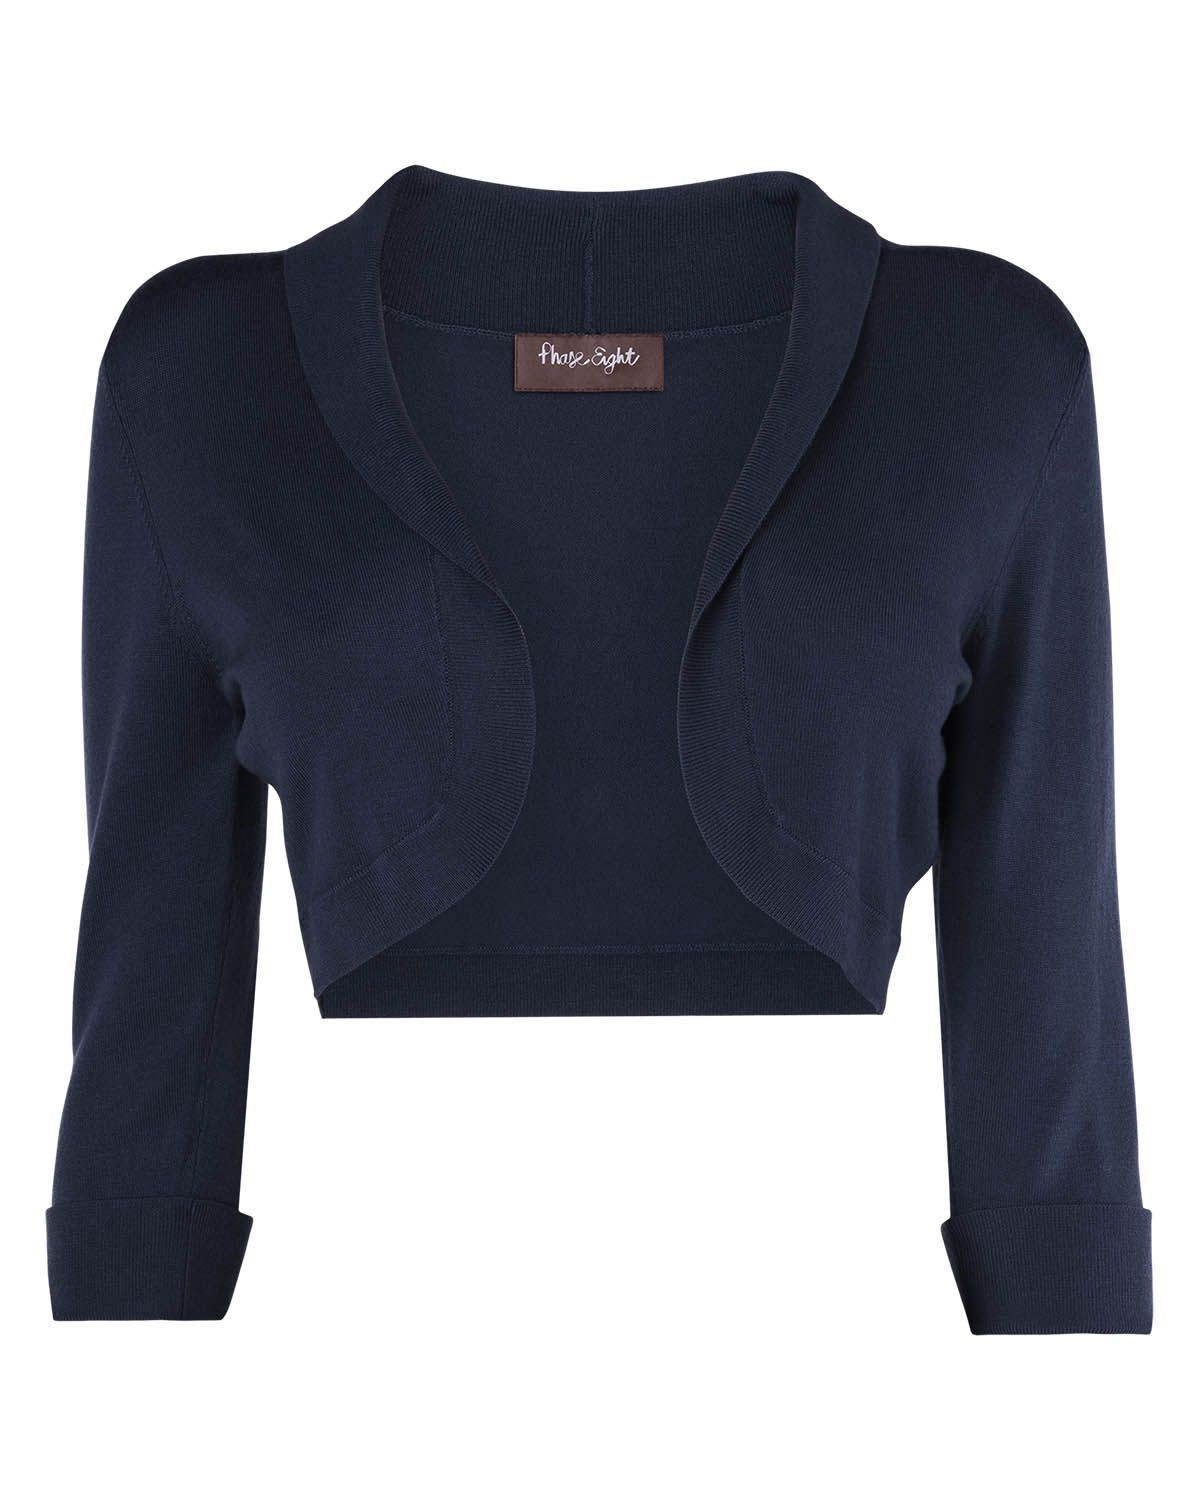 Phase Eight | Women's Shrugs & Boleros | Shawl Collar Bolero ...